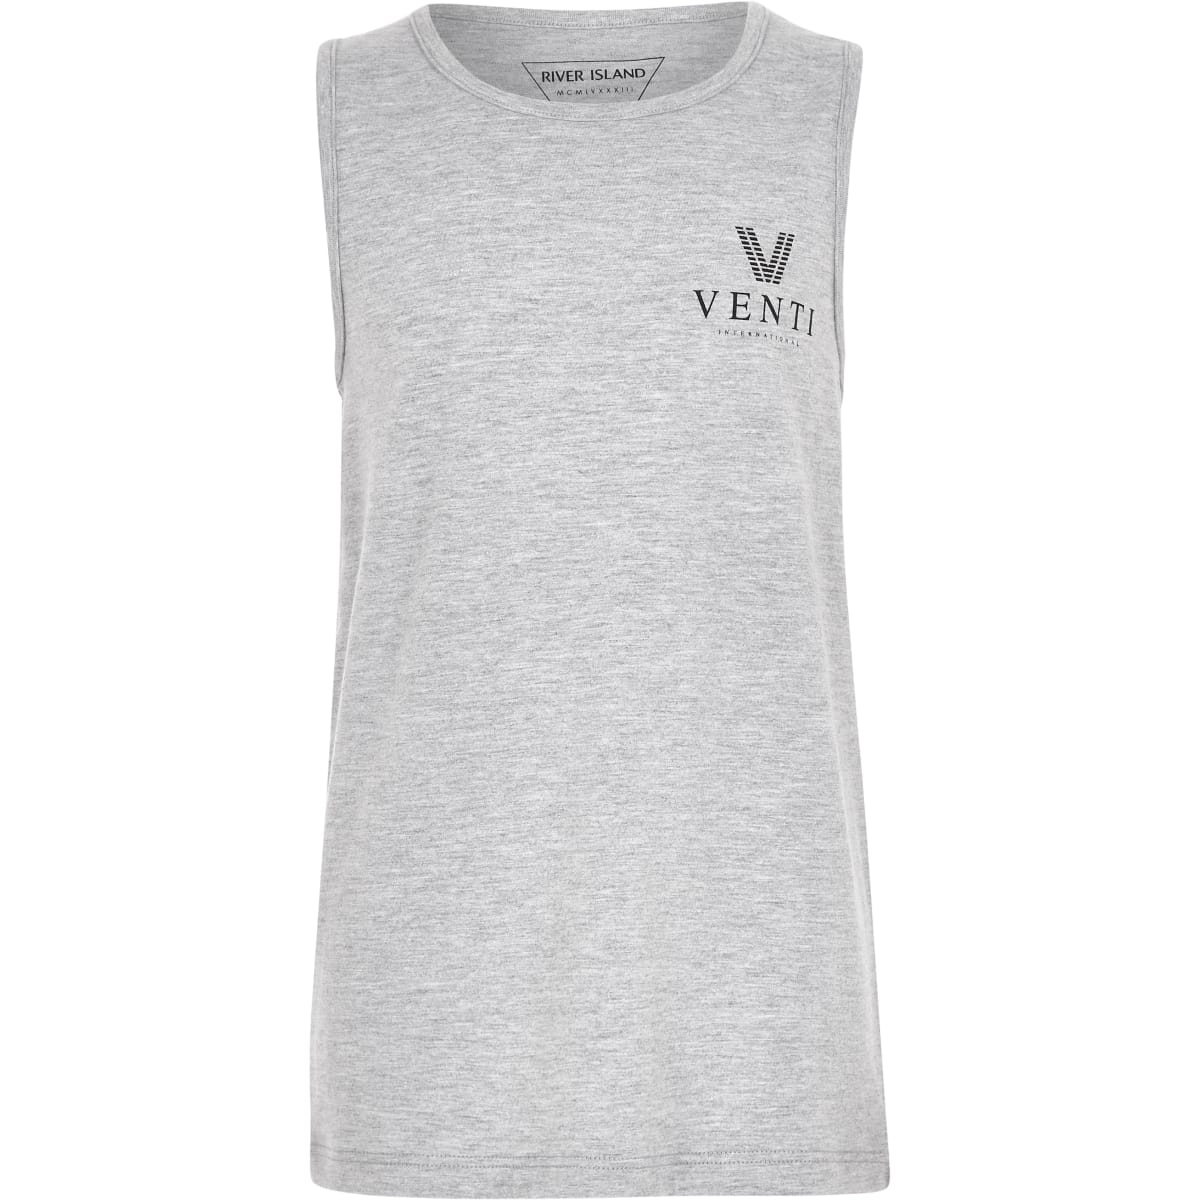 Boys grey marl 'Venti' tank